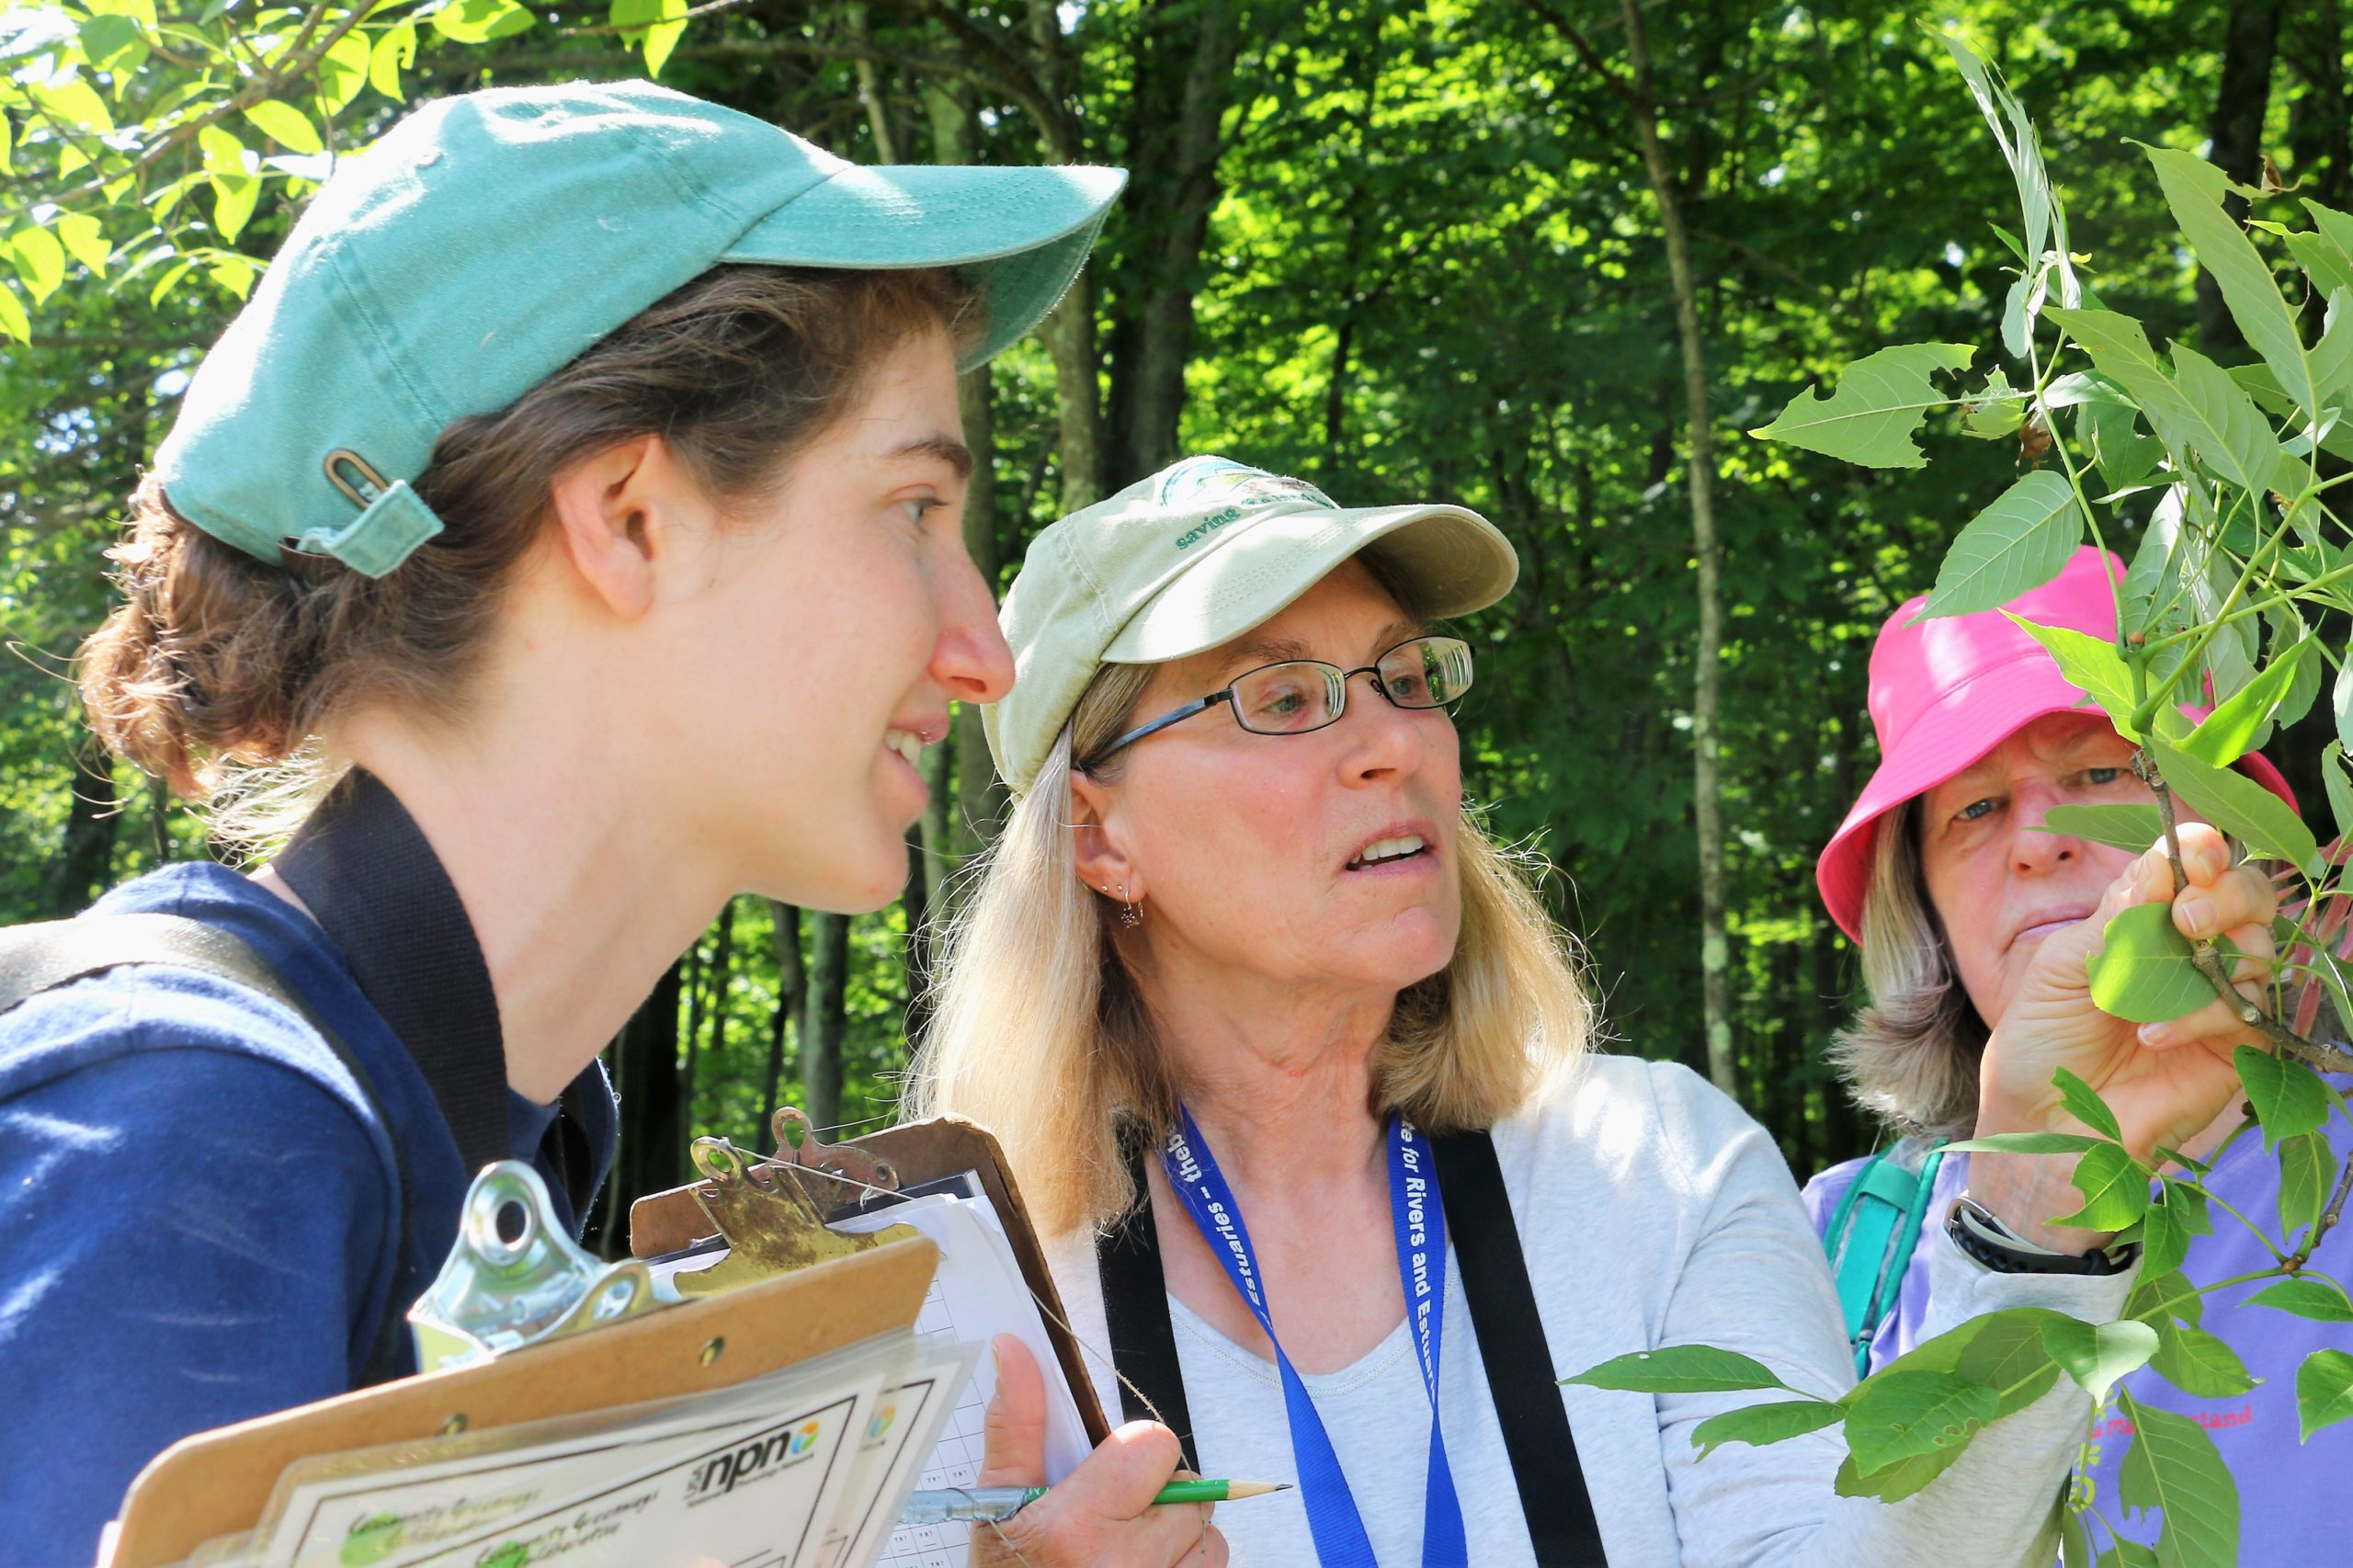 Carol Rietsma at a phenology orientation looking at a branch with a staff member and citizen scientist